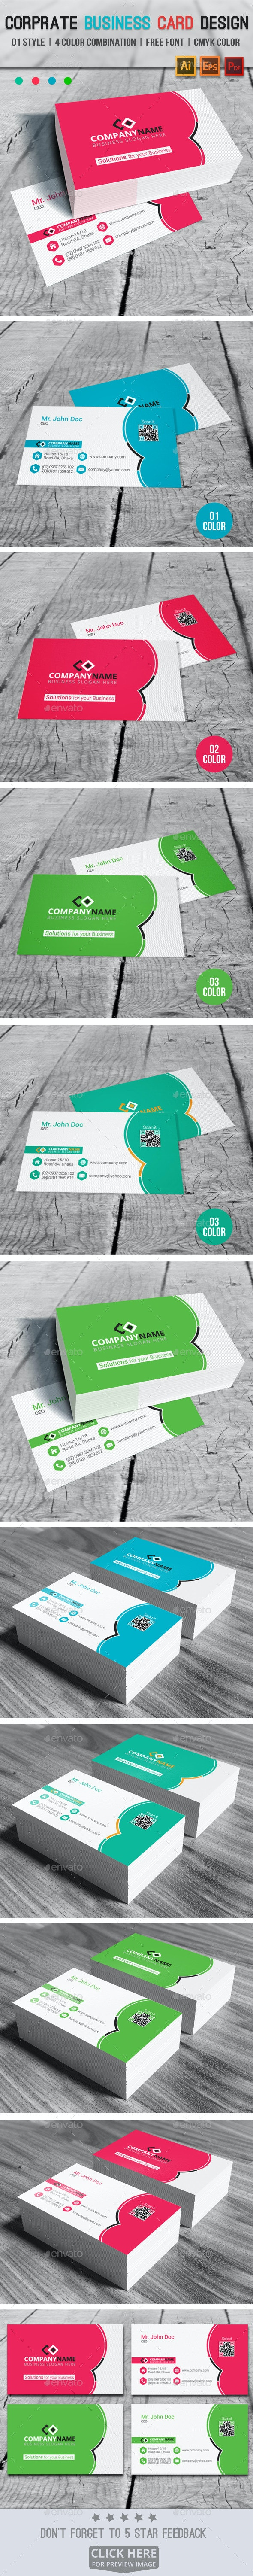 Corprate Business Card Design V03 - Corporate Business Cards